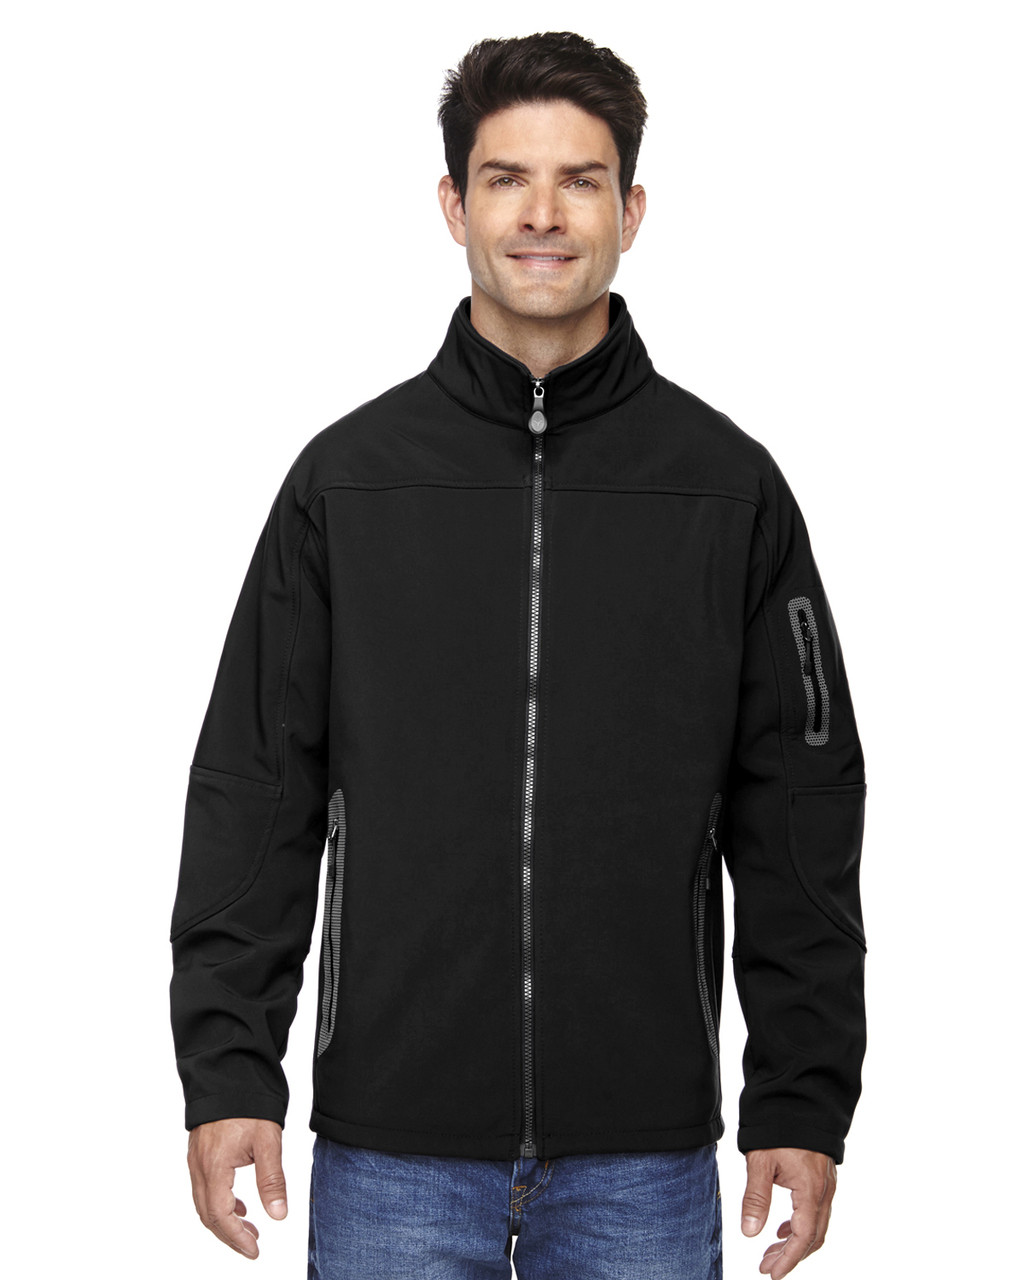 Black - 88138 North End Men's Soft Shell Technical Jacket | Blankclothing.ca